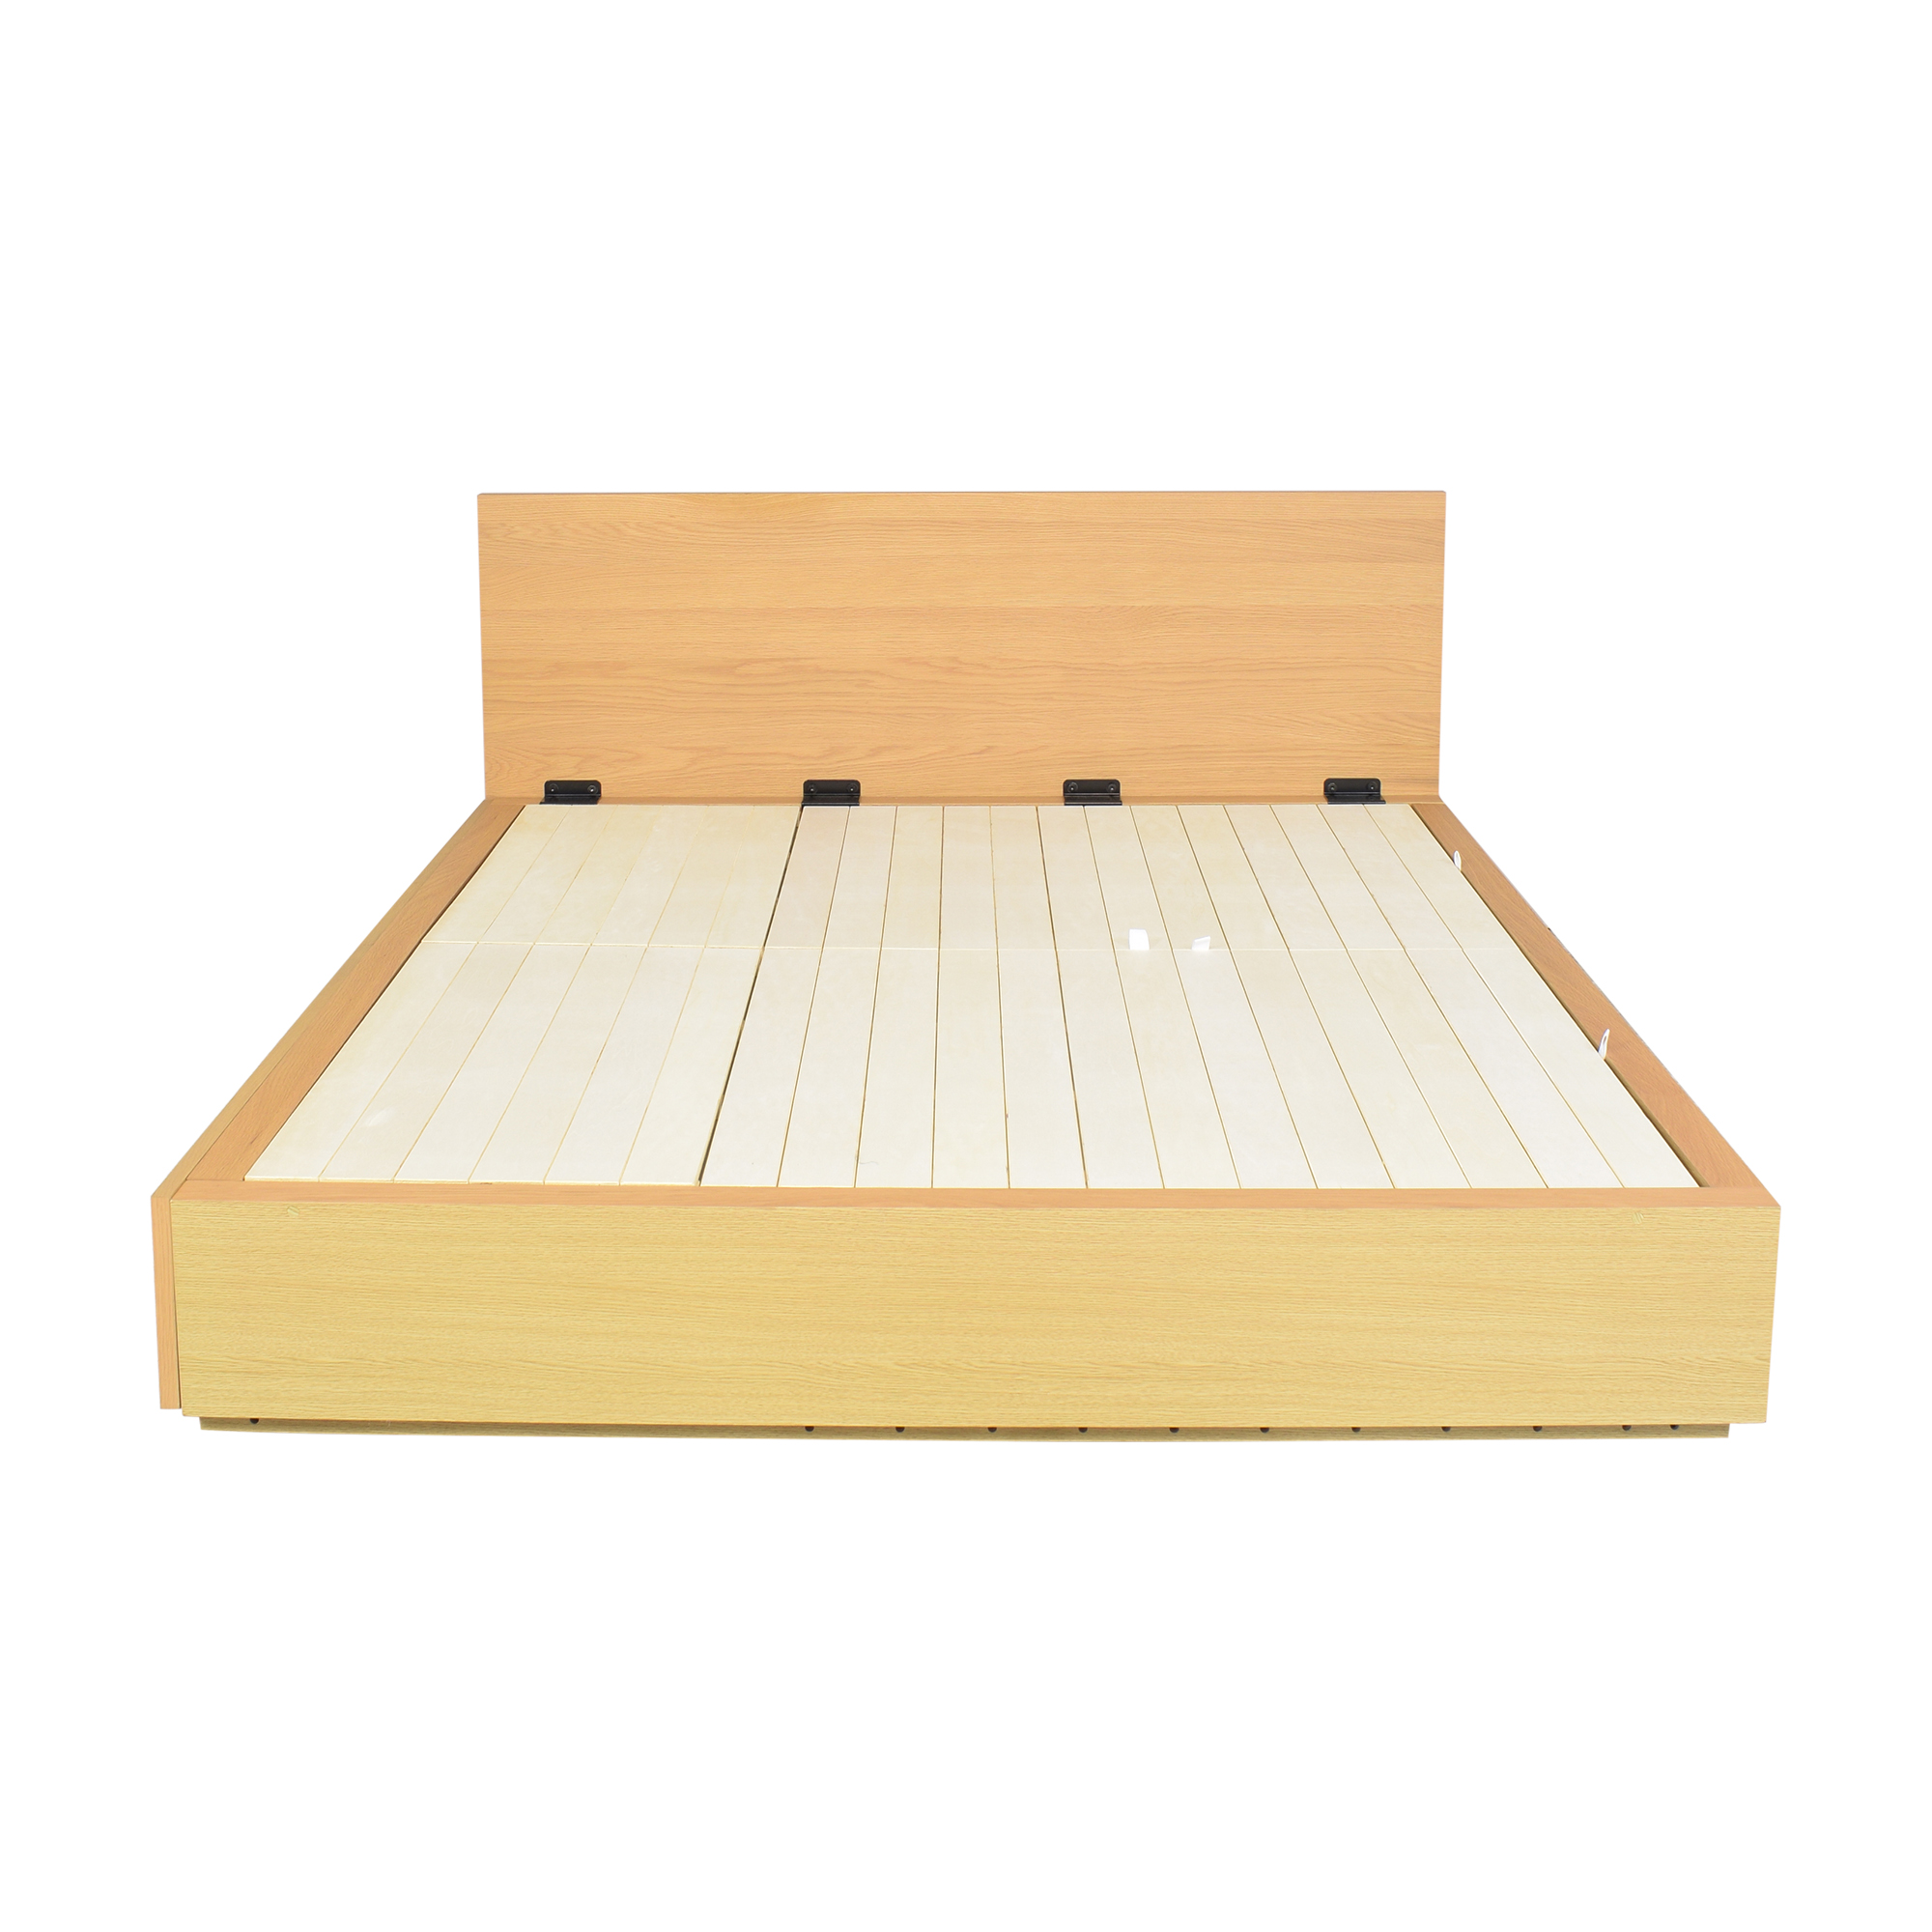 Muji Muji Queen Storage Bed dimensions